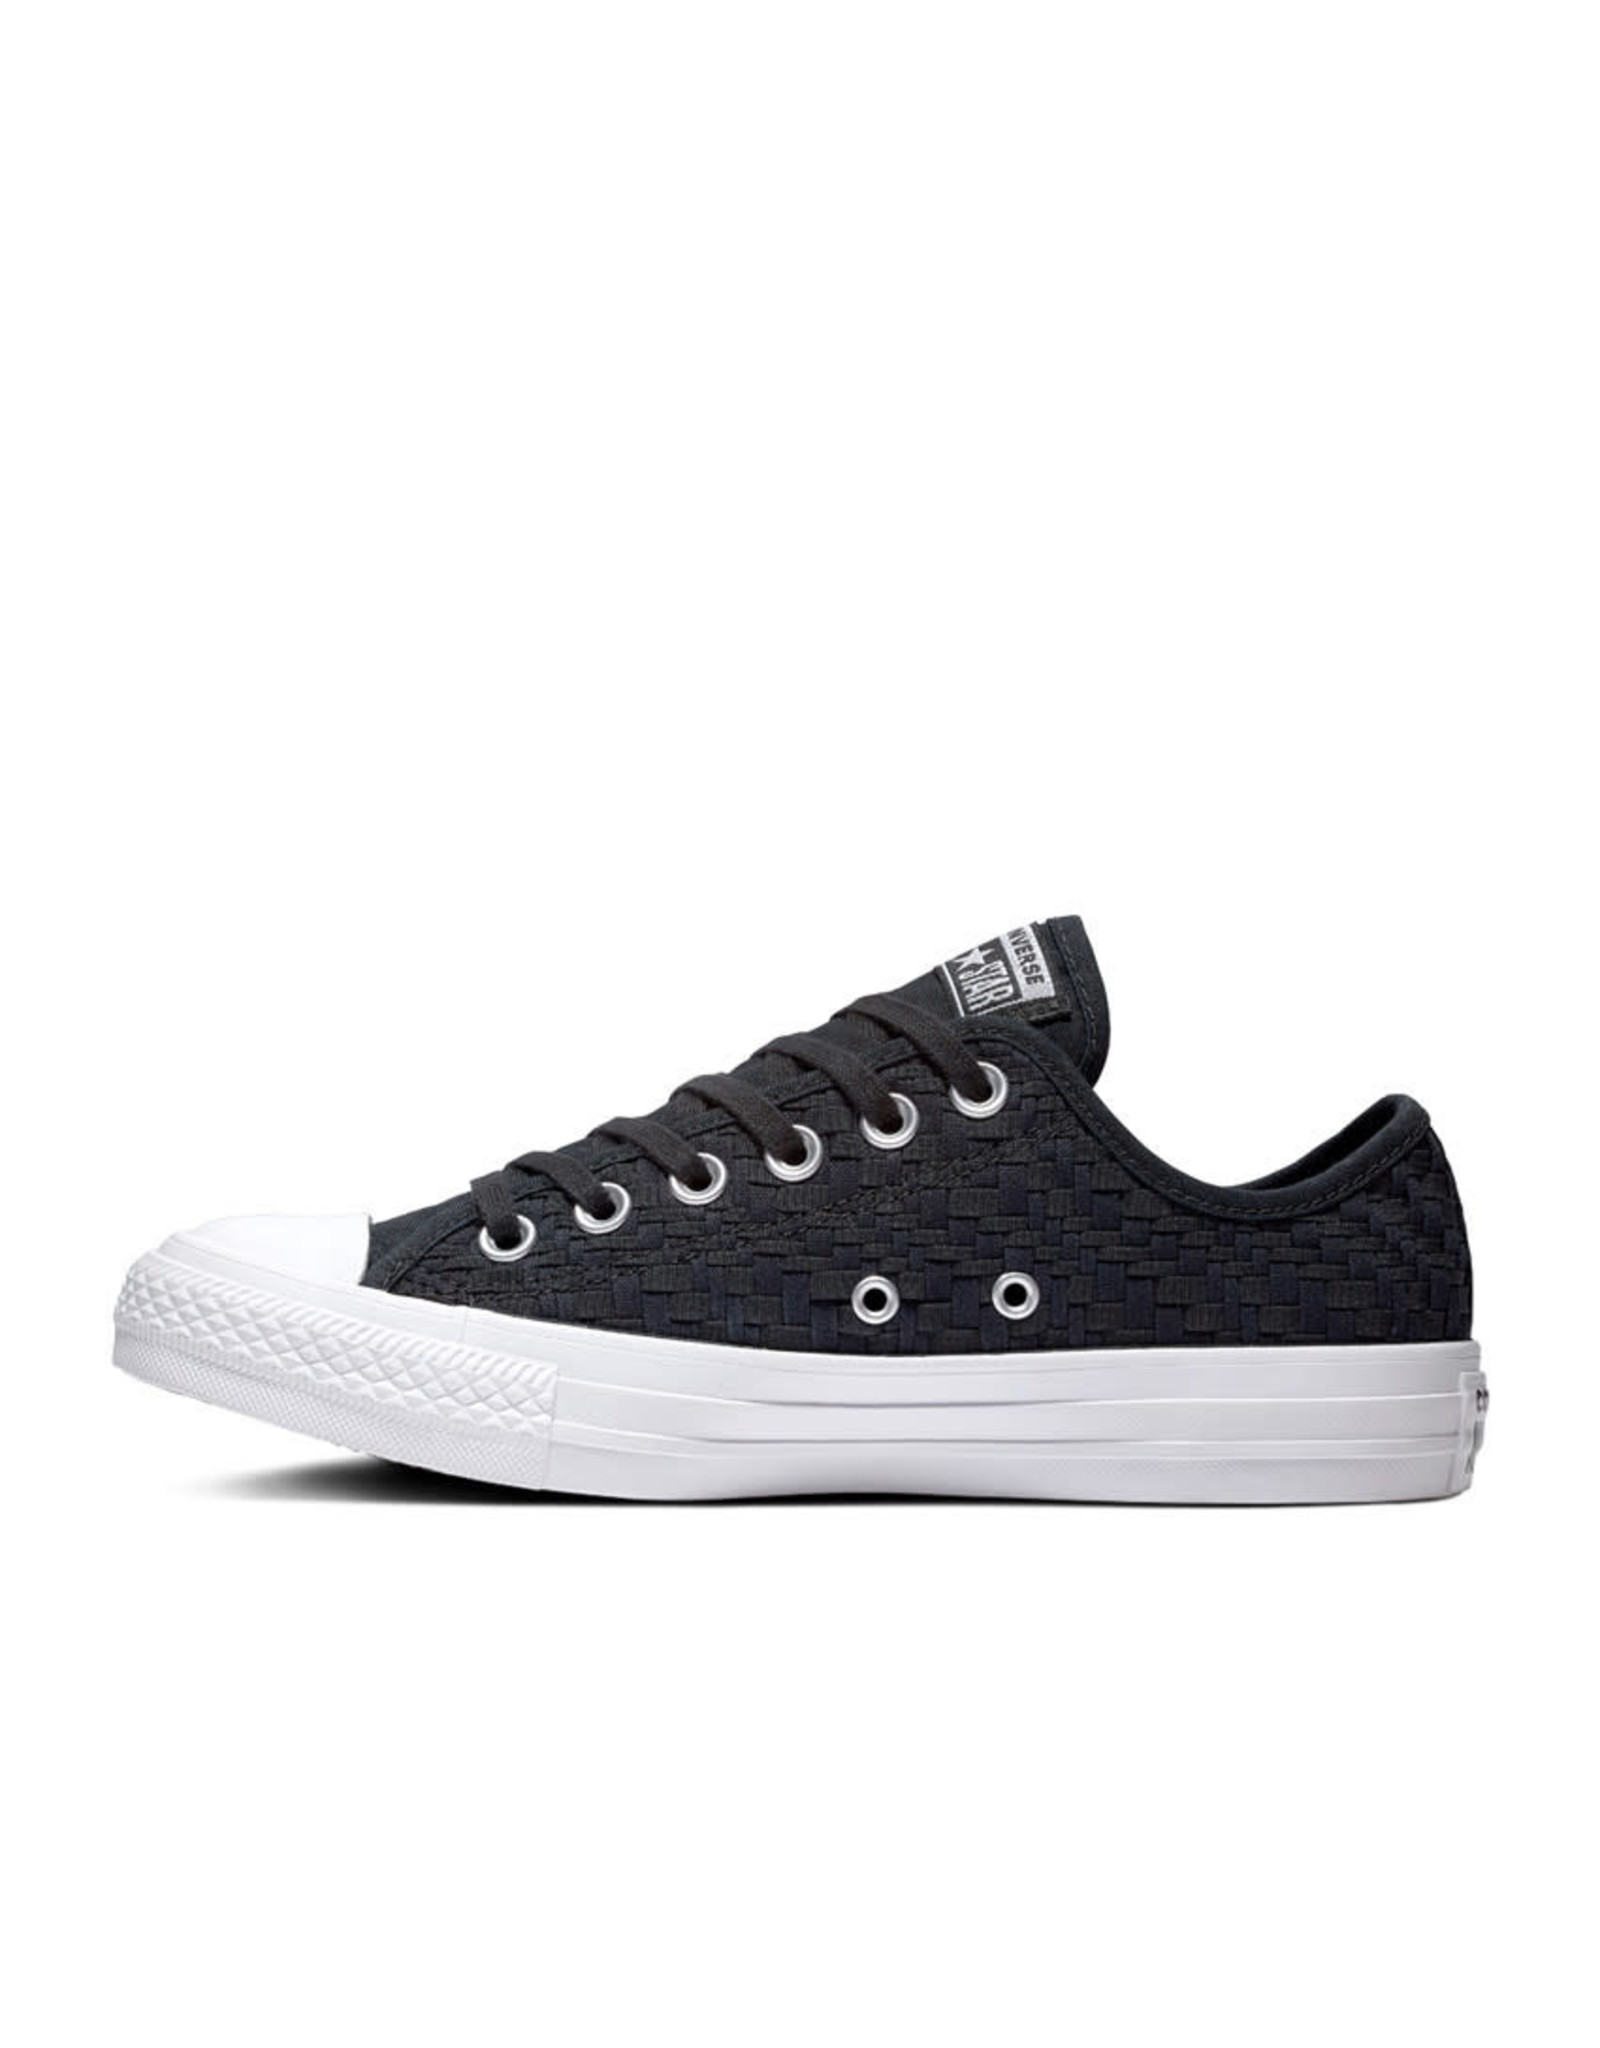 CONVERSE CHUCK TAYLOR ALL STAR OX BLACK/EGRET/WHITE C13BE-564355C